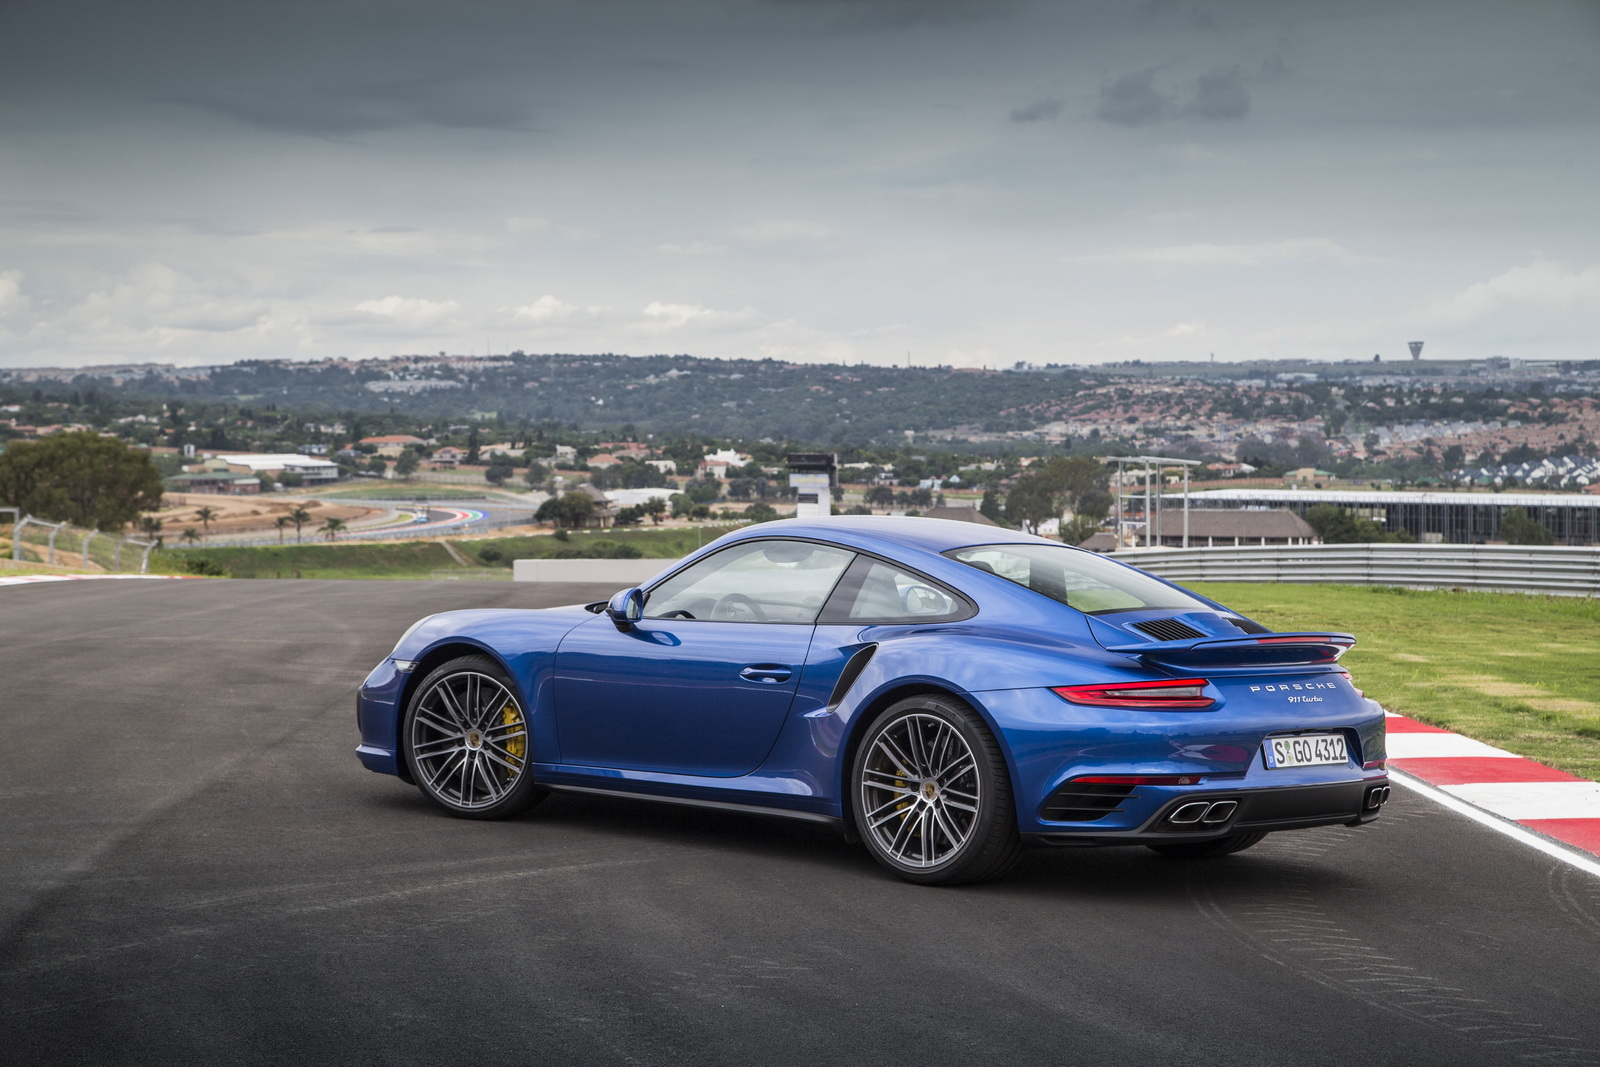 2017 porsche 911 turbo turbo s analysed in new gallery 37 pics carscoops. Black Bedroom Furniture Sets. Home Design Ideas